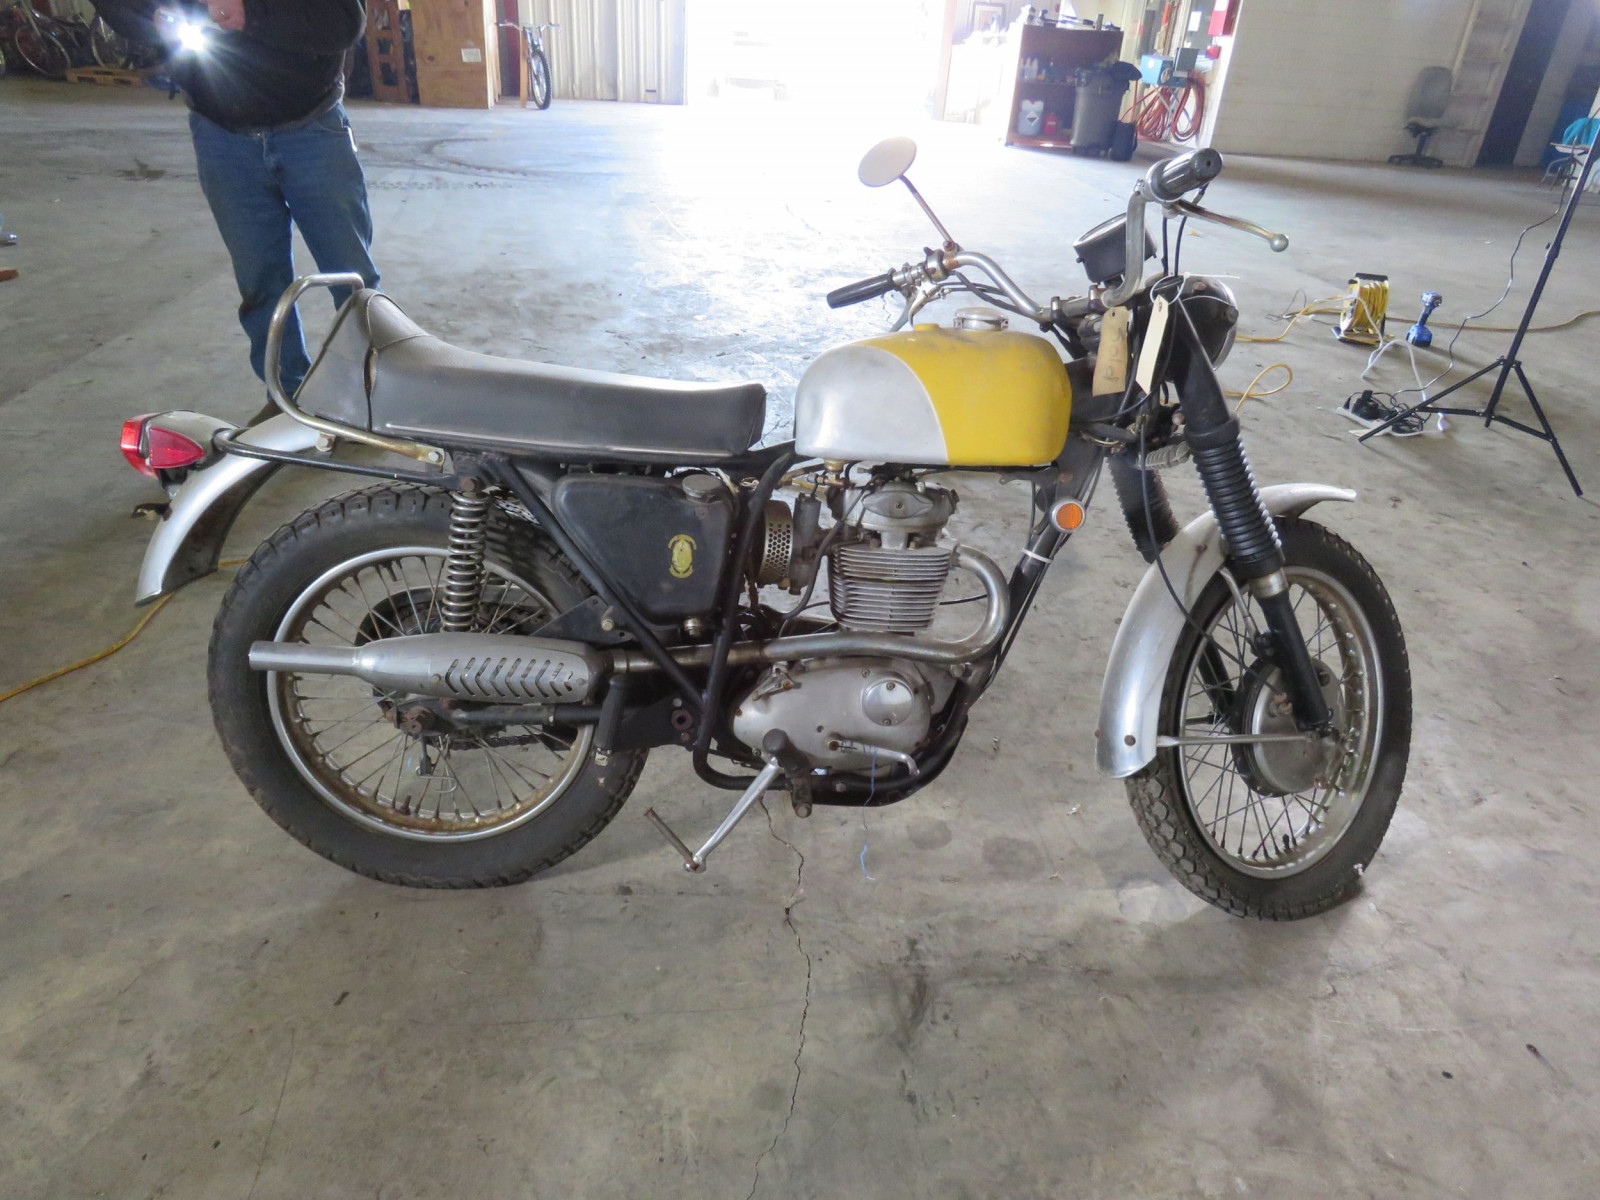 1970 BSA B44 Victor Special Motorcycle - Image 5